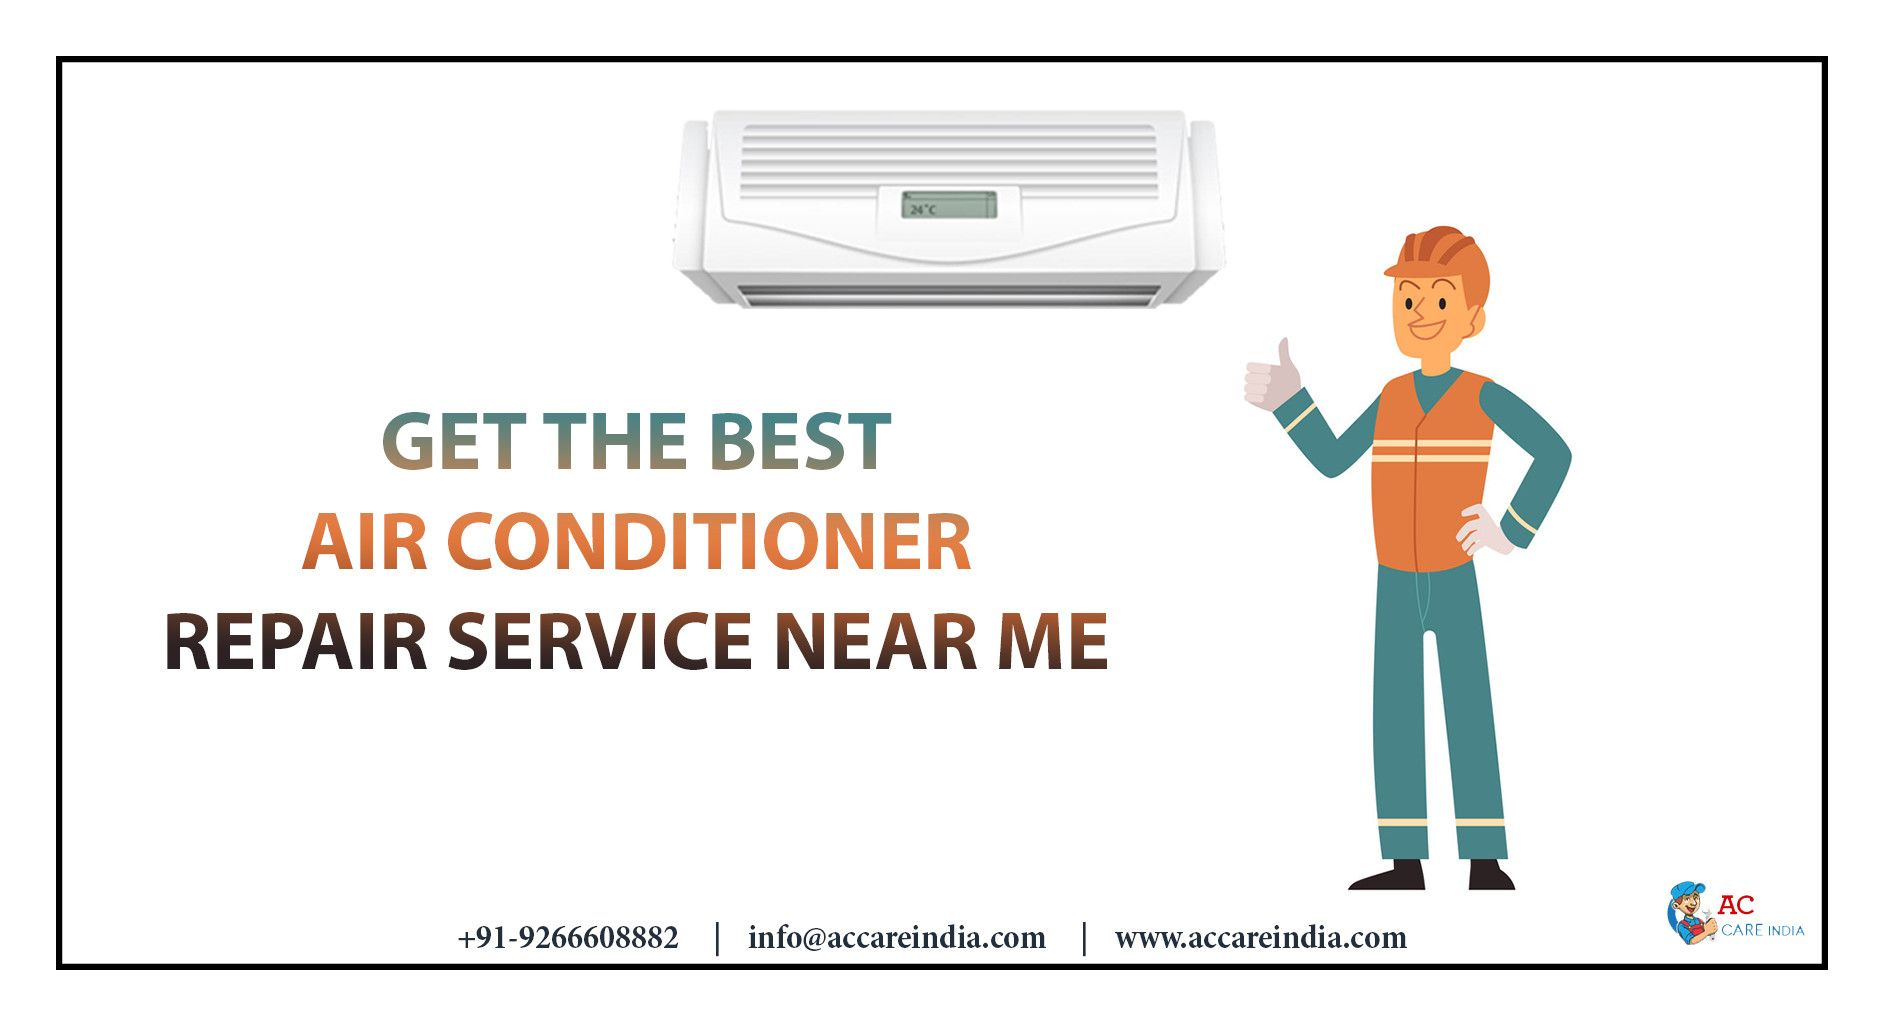 Pin on Air conditioner repair